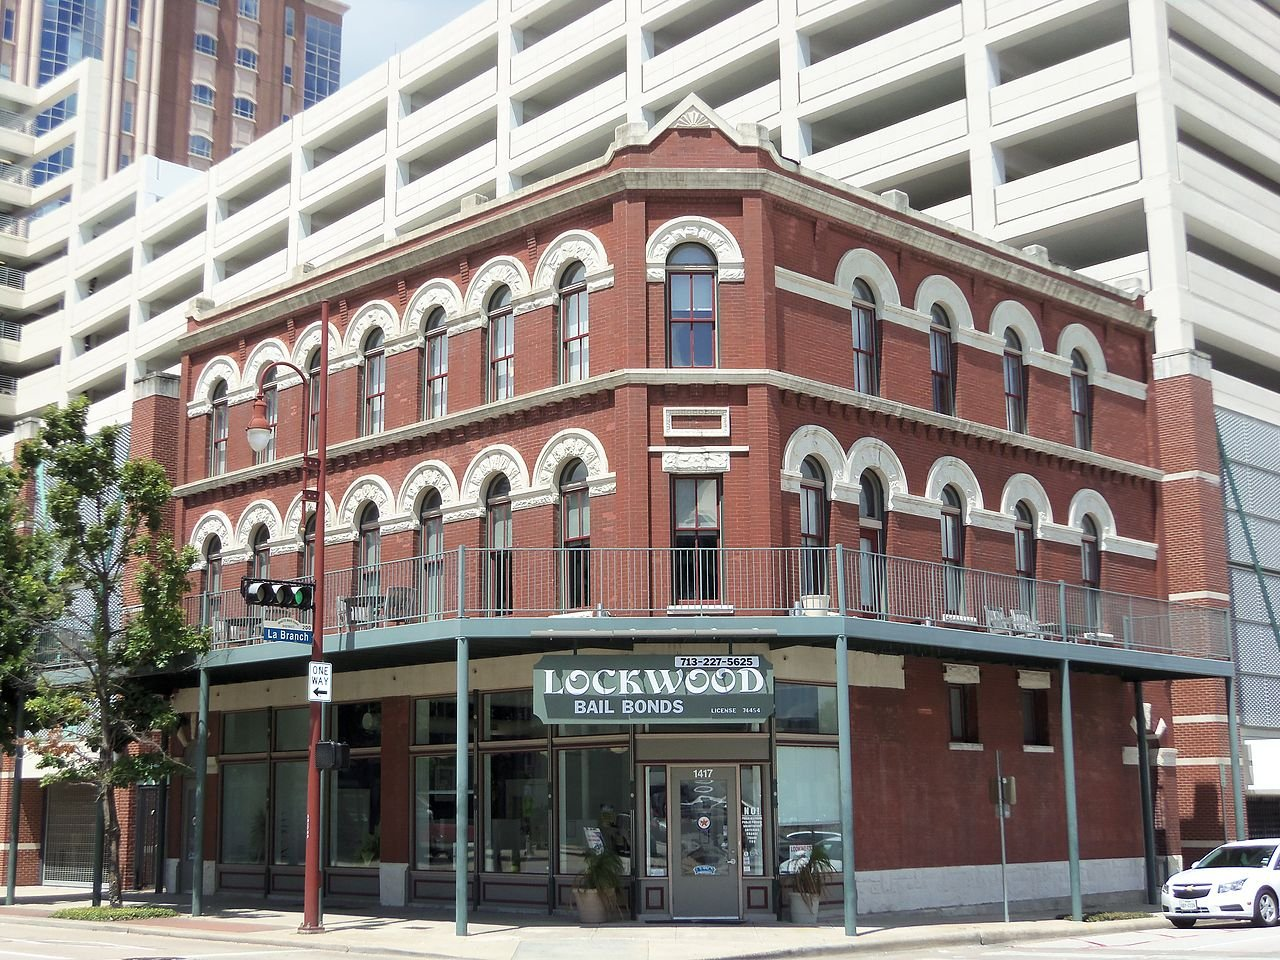 The former Palace Hotel is listed on the National Register of Historic Places. It is one of the few buildings left in the Second Ward built in the early 1900s.